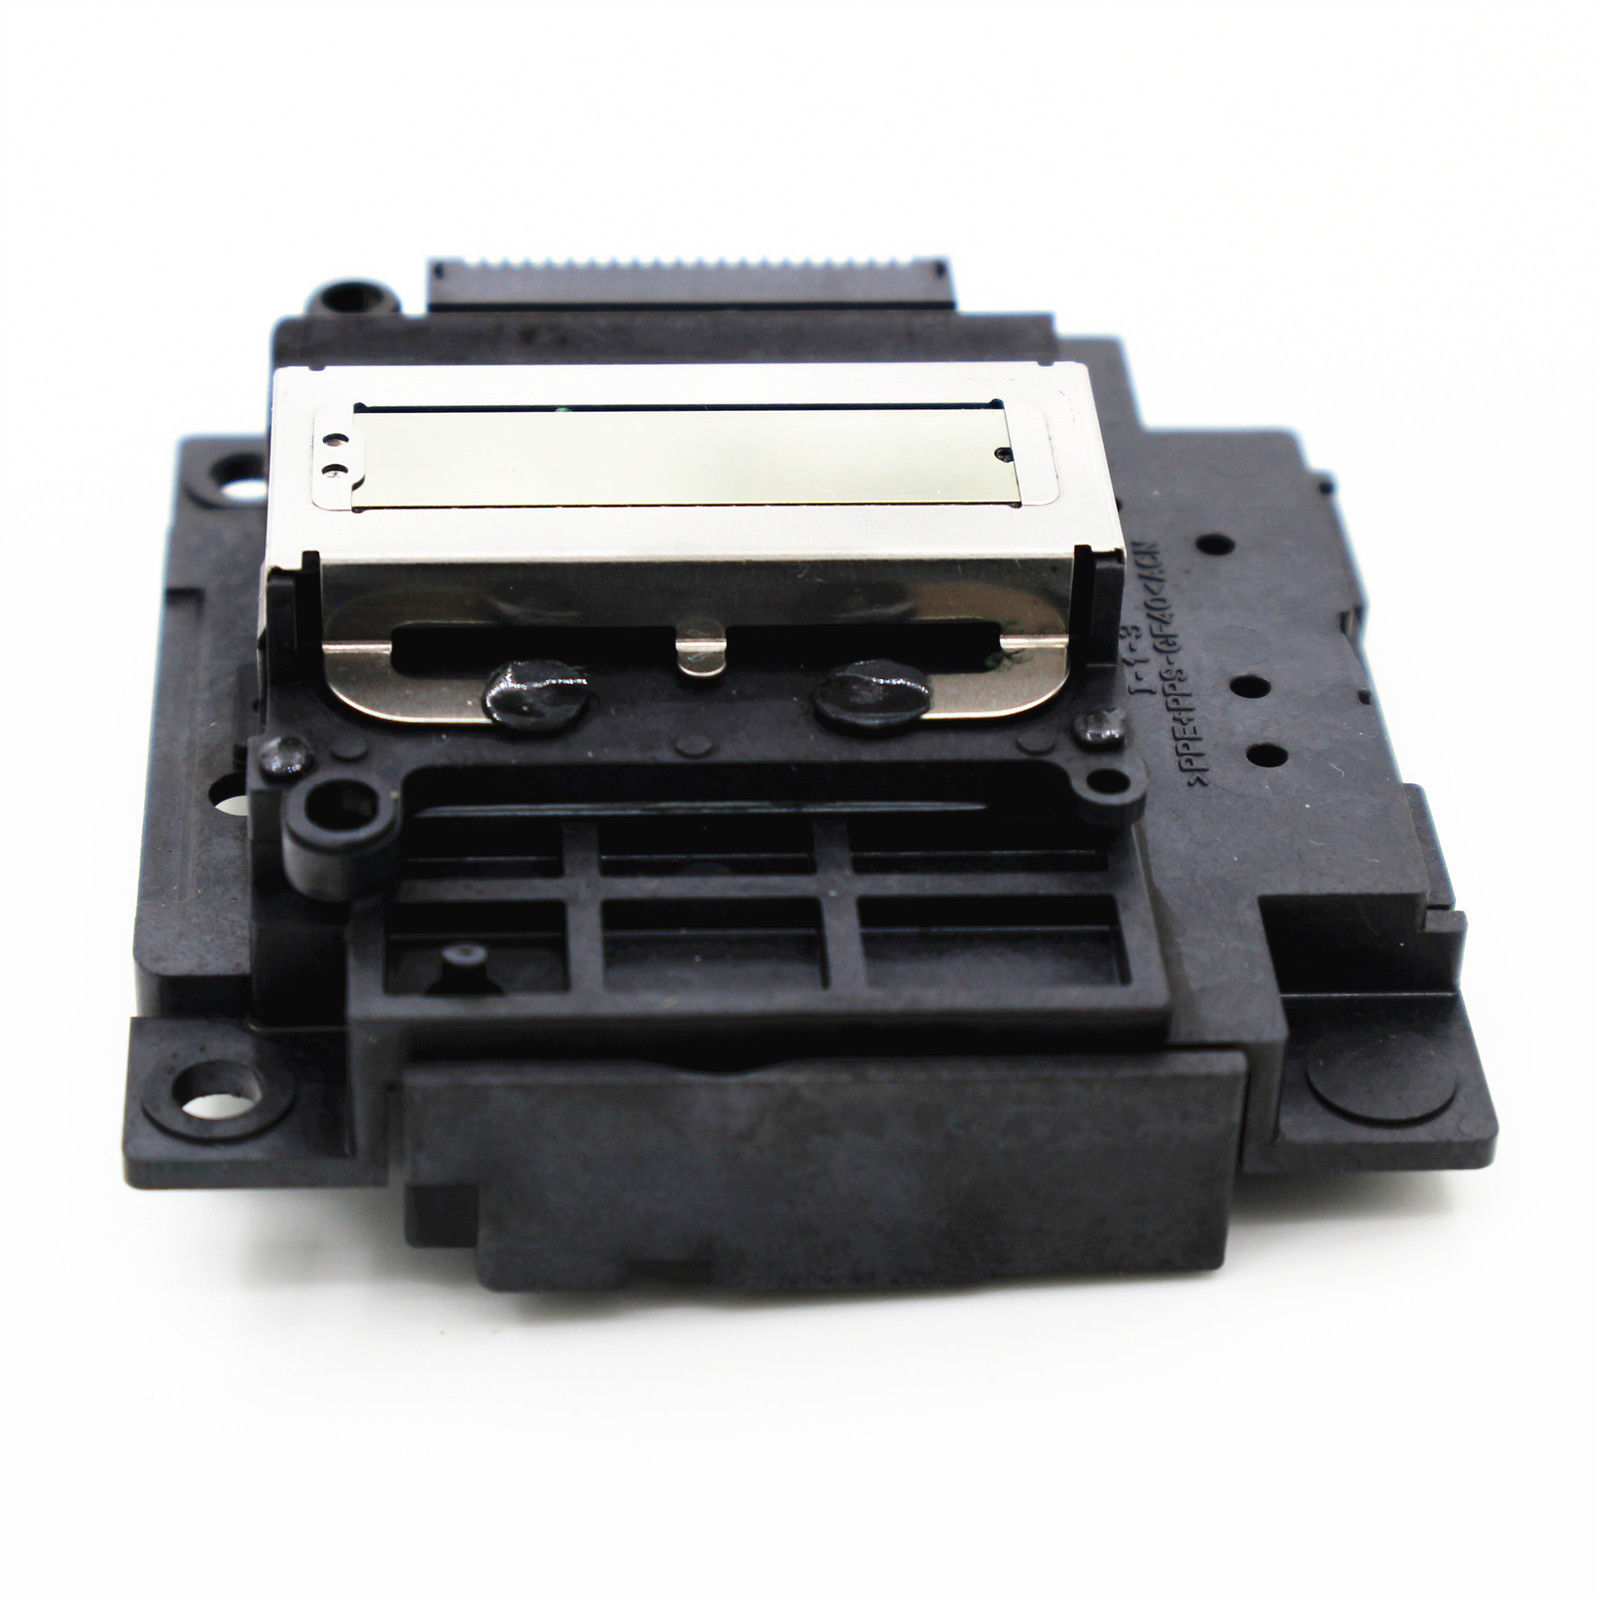 FA04000 FA04010 Print Head For Epson L110 L111 L120 L211 L210 L300 L301 L303 L335 L555 XP300 XP302 XP400 WF2520 WF2521Printhead original printhead print head for xp401 xp410 xp415 xp412 xp405 xp403 xp406 xp413 xp400 xp300 xp302 inkjet printer print head